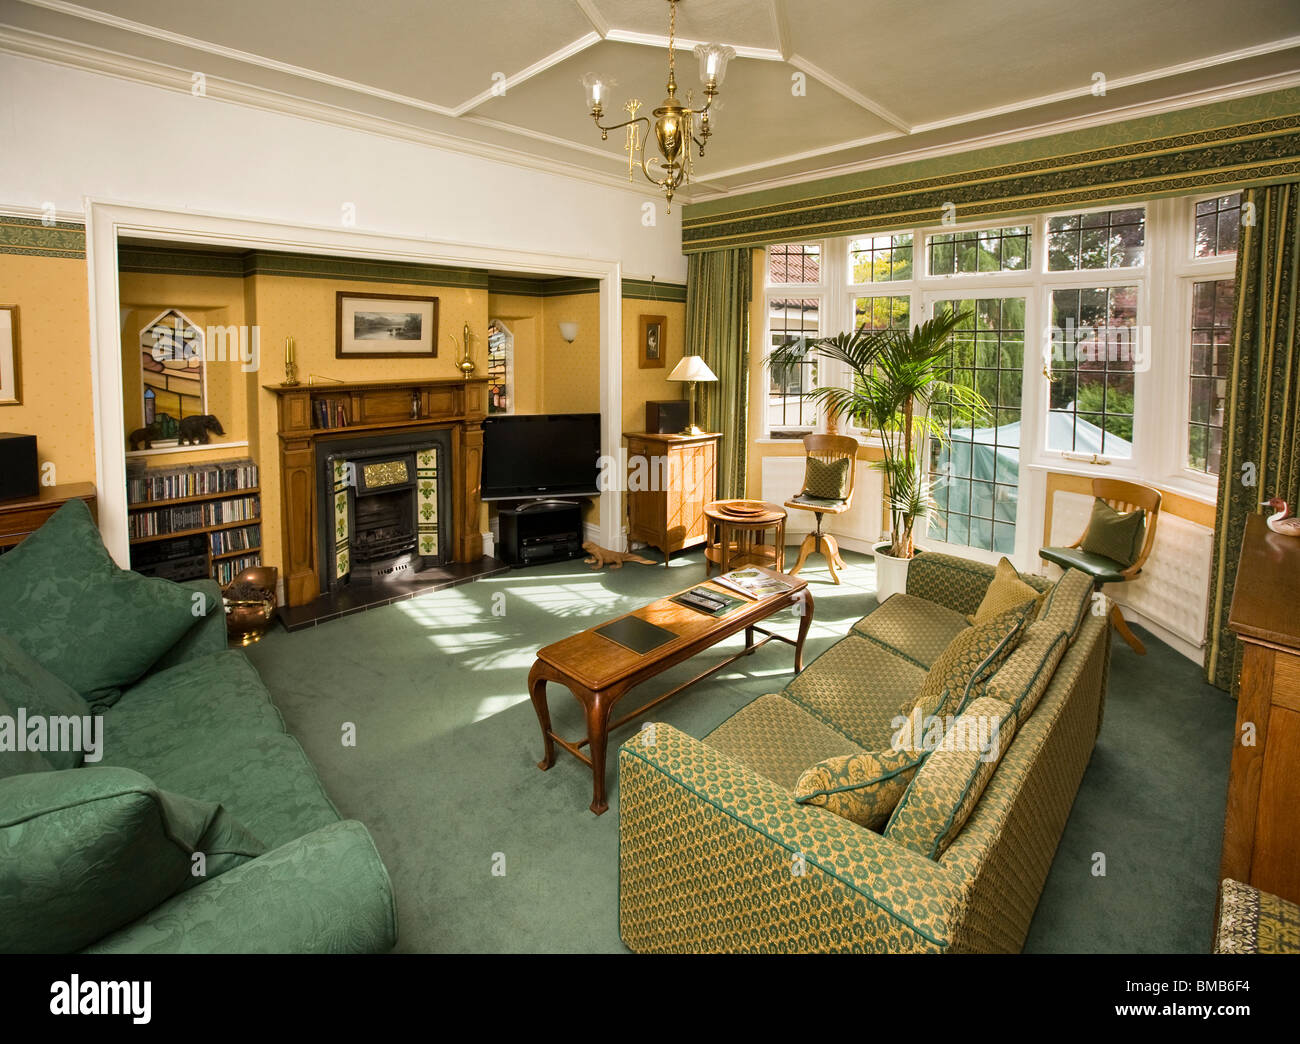 Houses Edwardian Arts And Crafts House Sitting Room Interior Stock